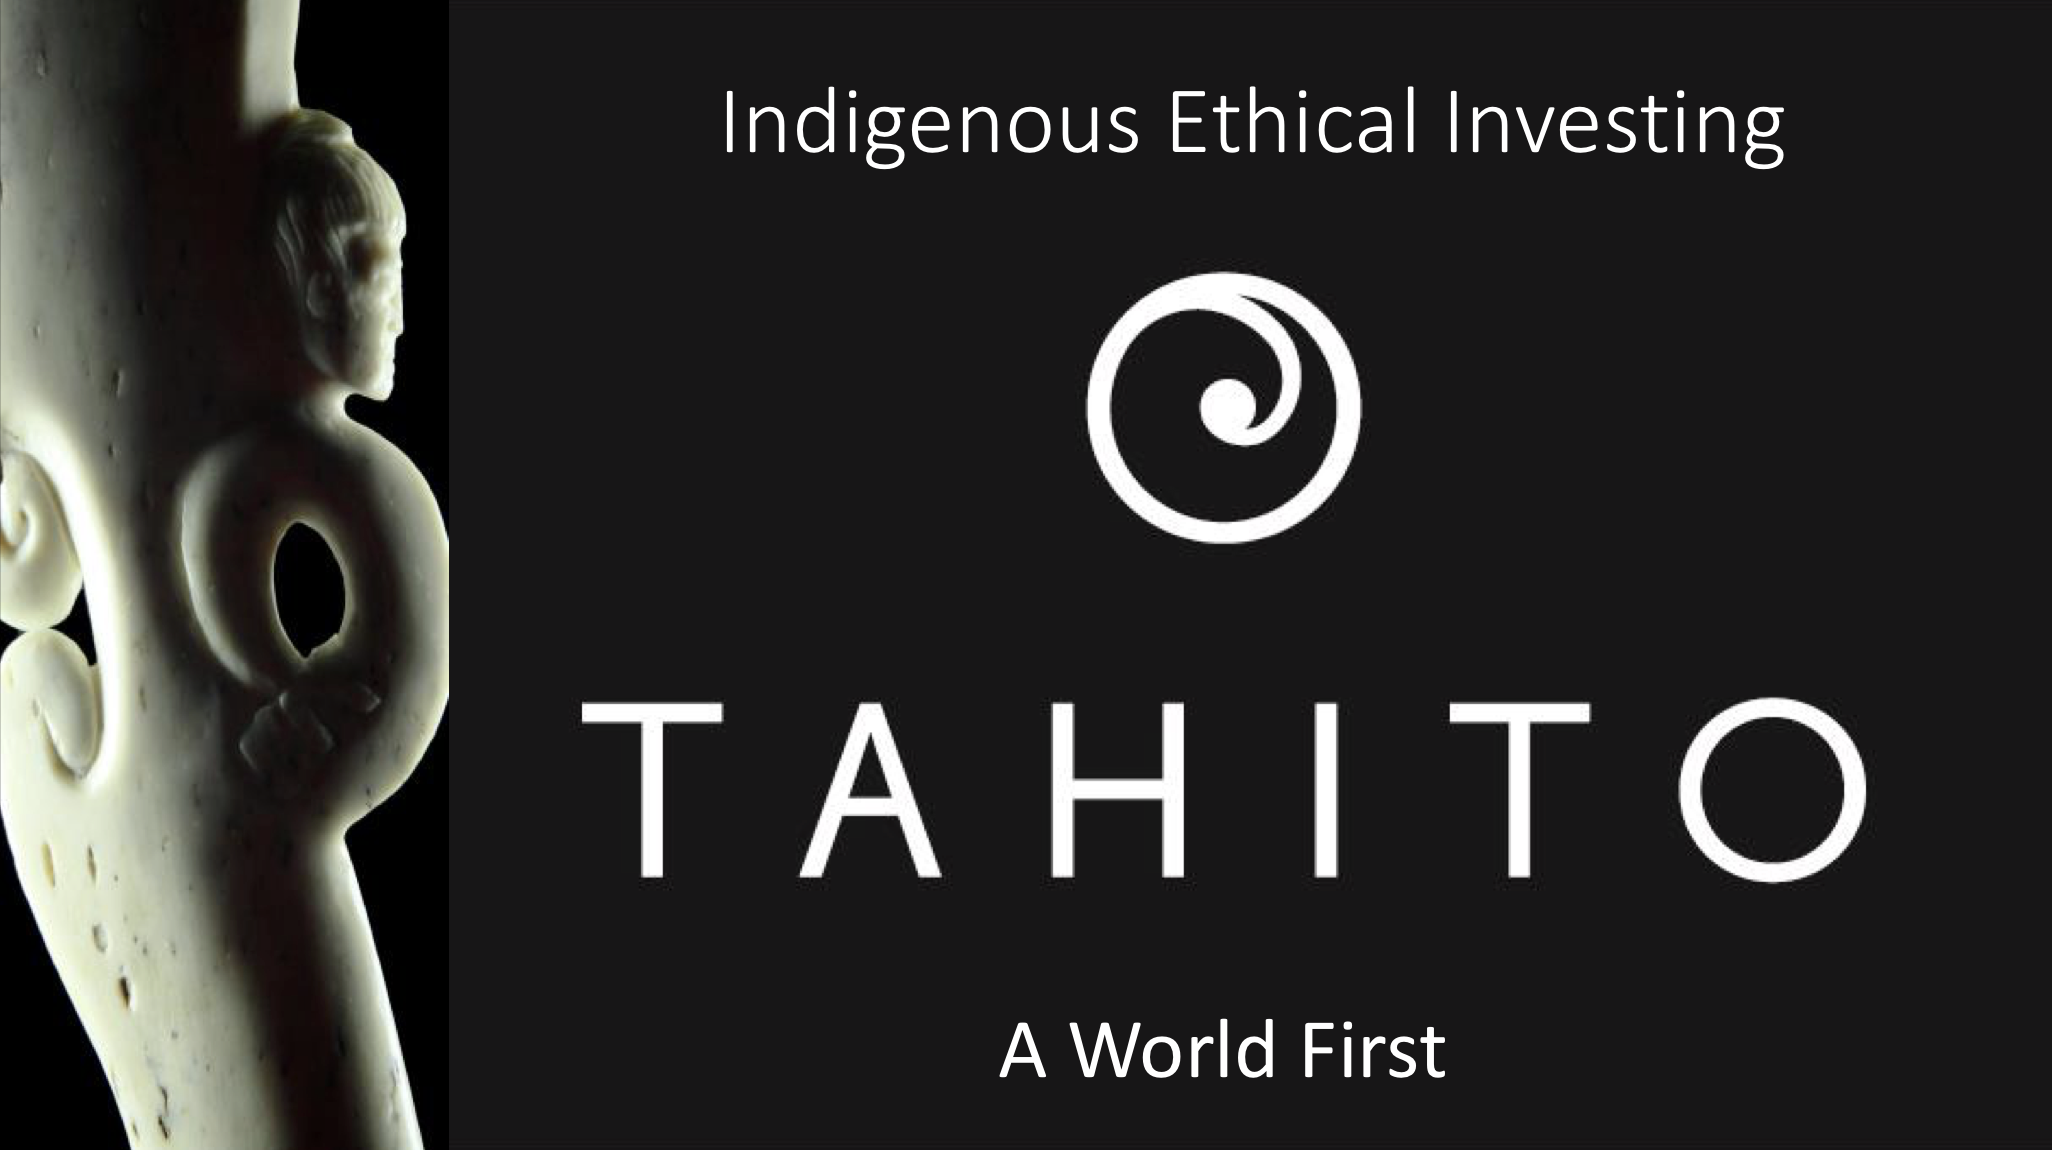 Indigenous Ethical Investing   Temuera Hall ('Tahito' JMI Wealth Limited)